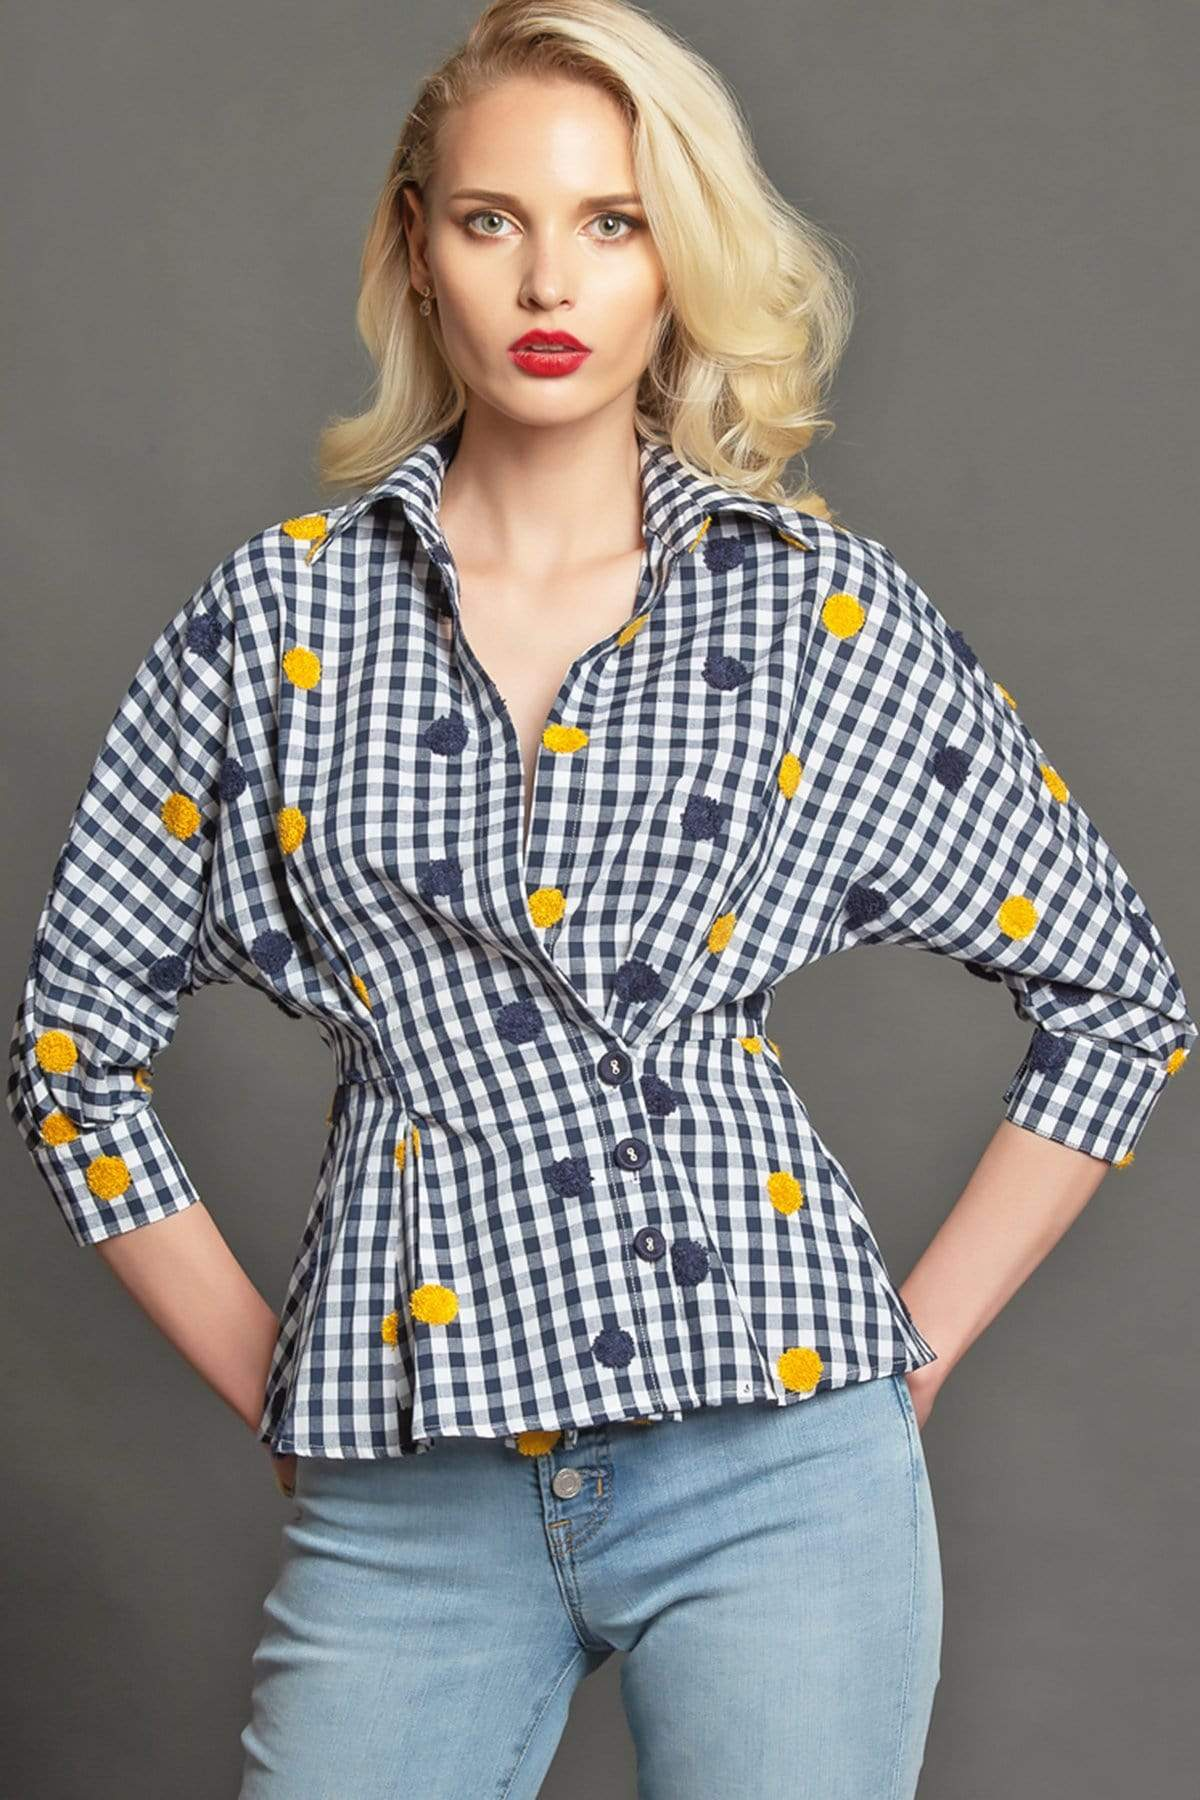 Eva Franco Top Albright Top in Savannah Gingham